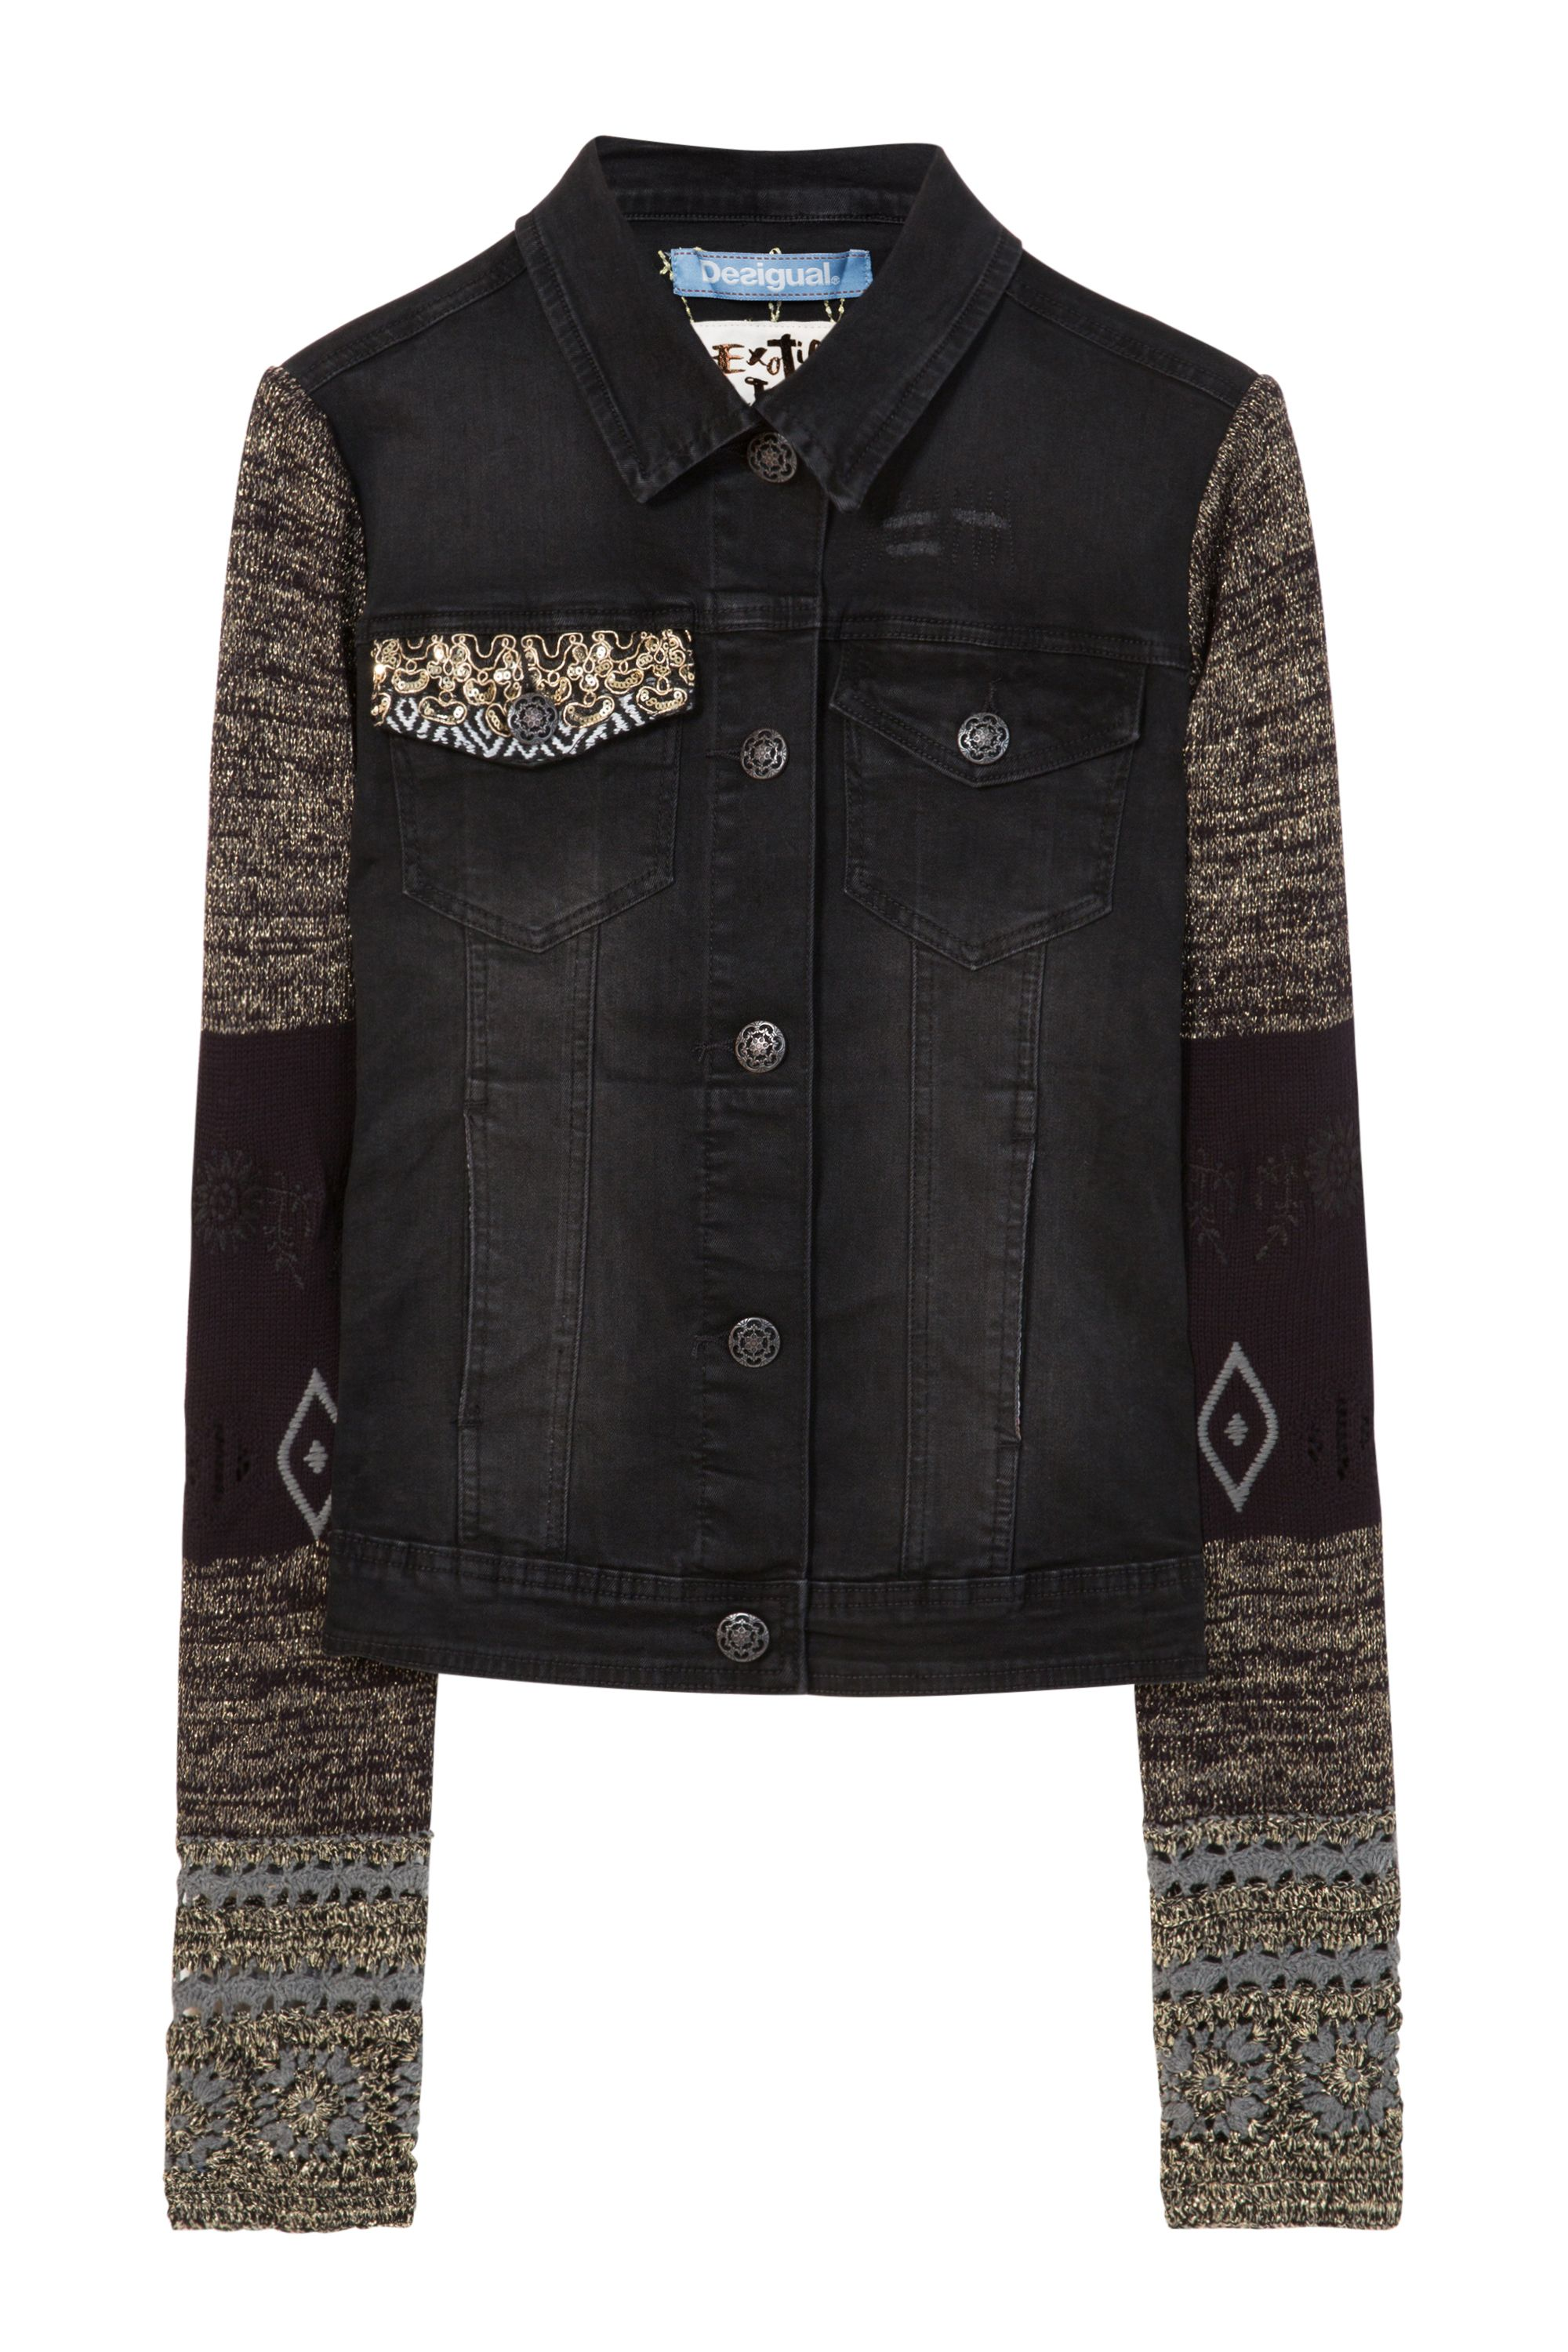 Desigual Jacket Sally, Black